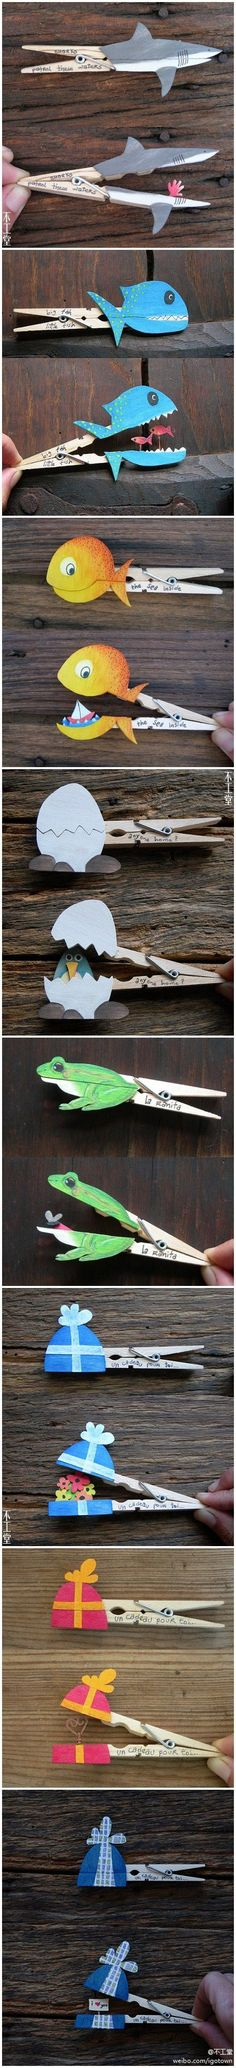 Animal clothespins | Source: http://nomduncamion.com/category/diy/